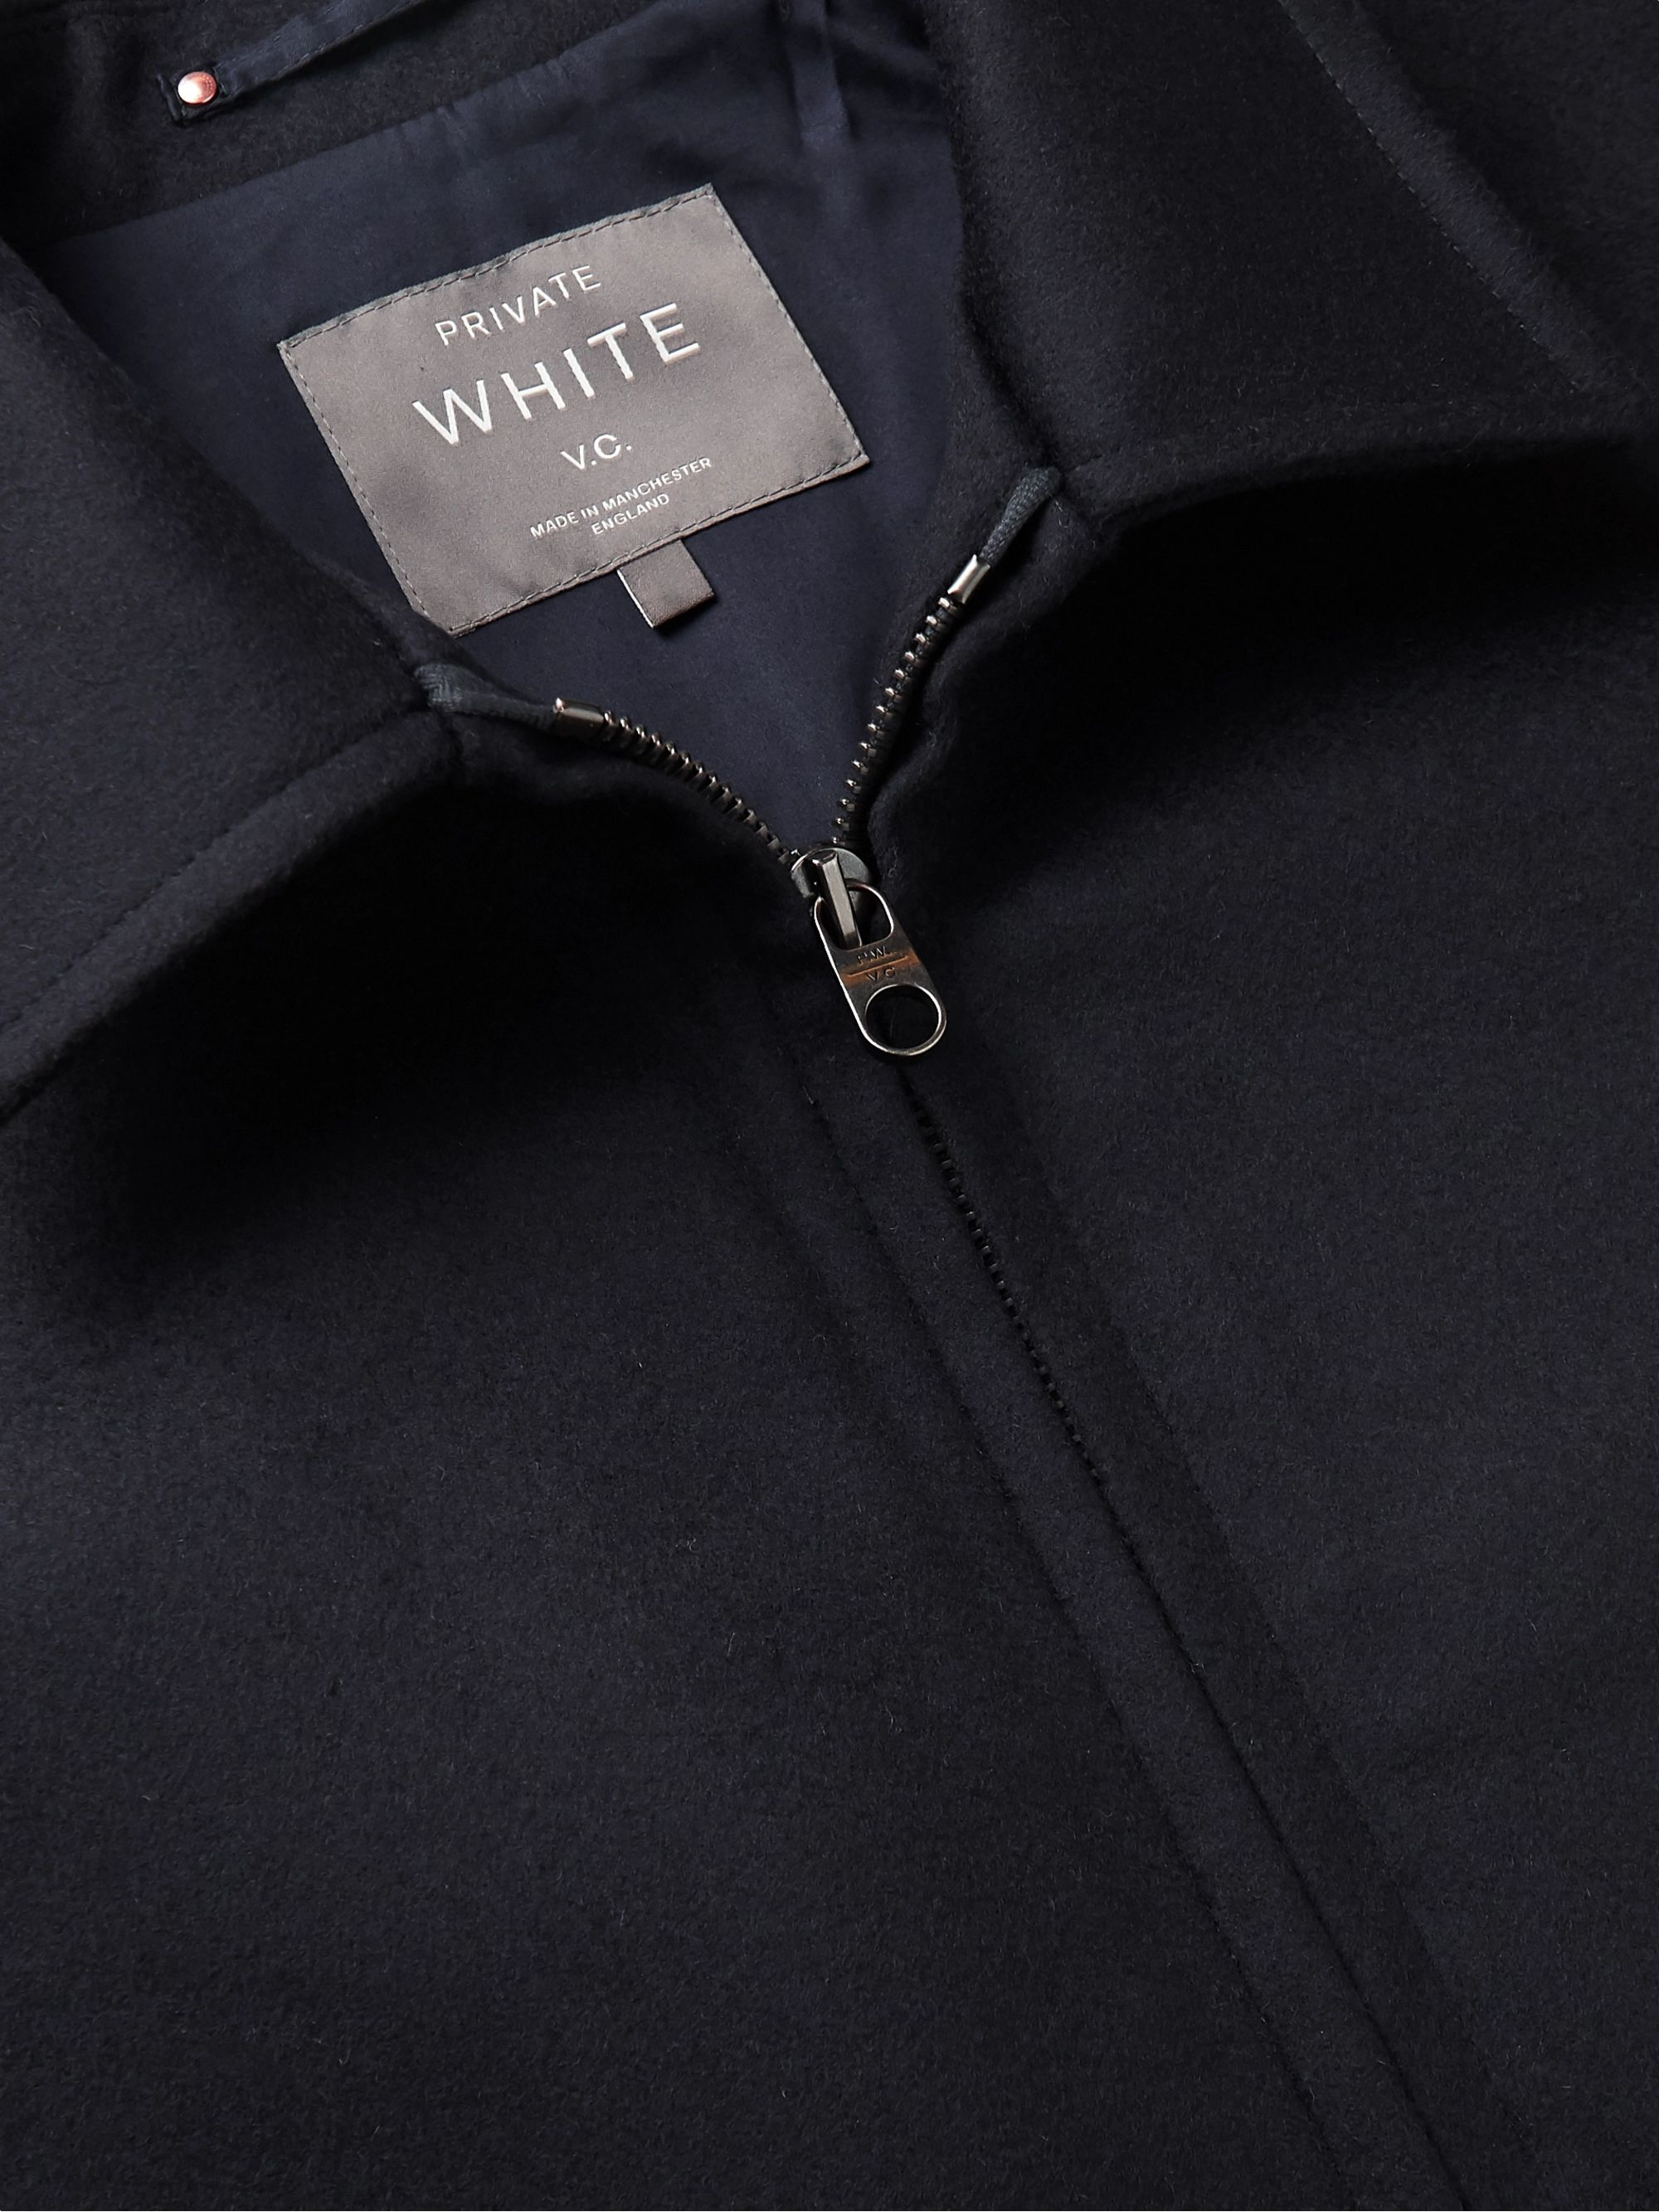 Private White V.C. Wool-Felt Bomber Jacket